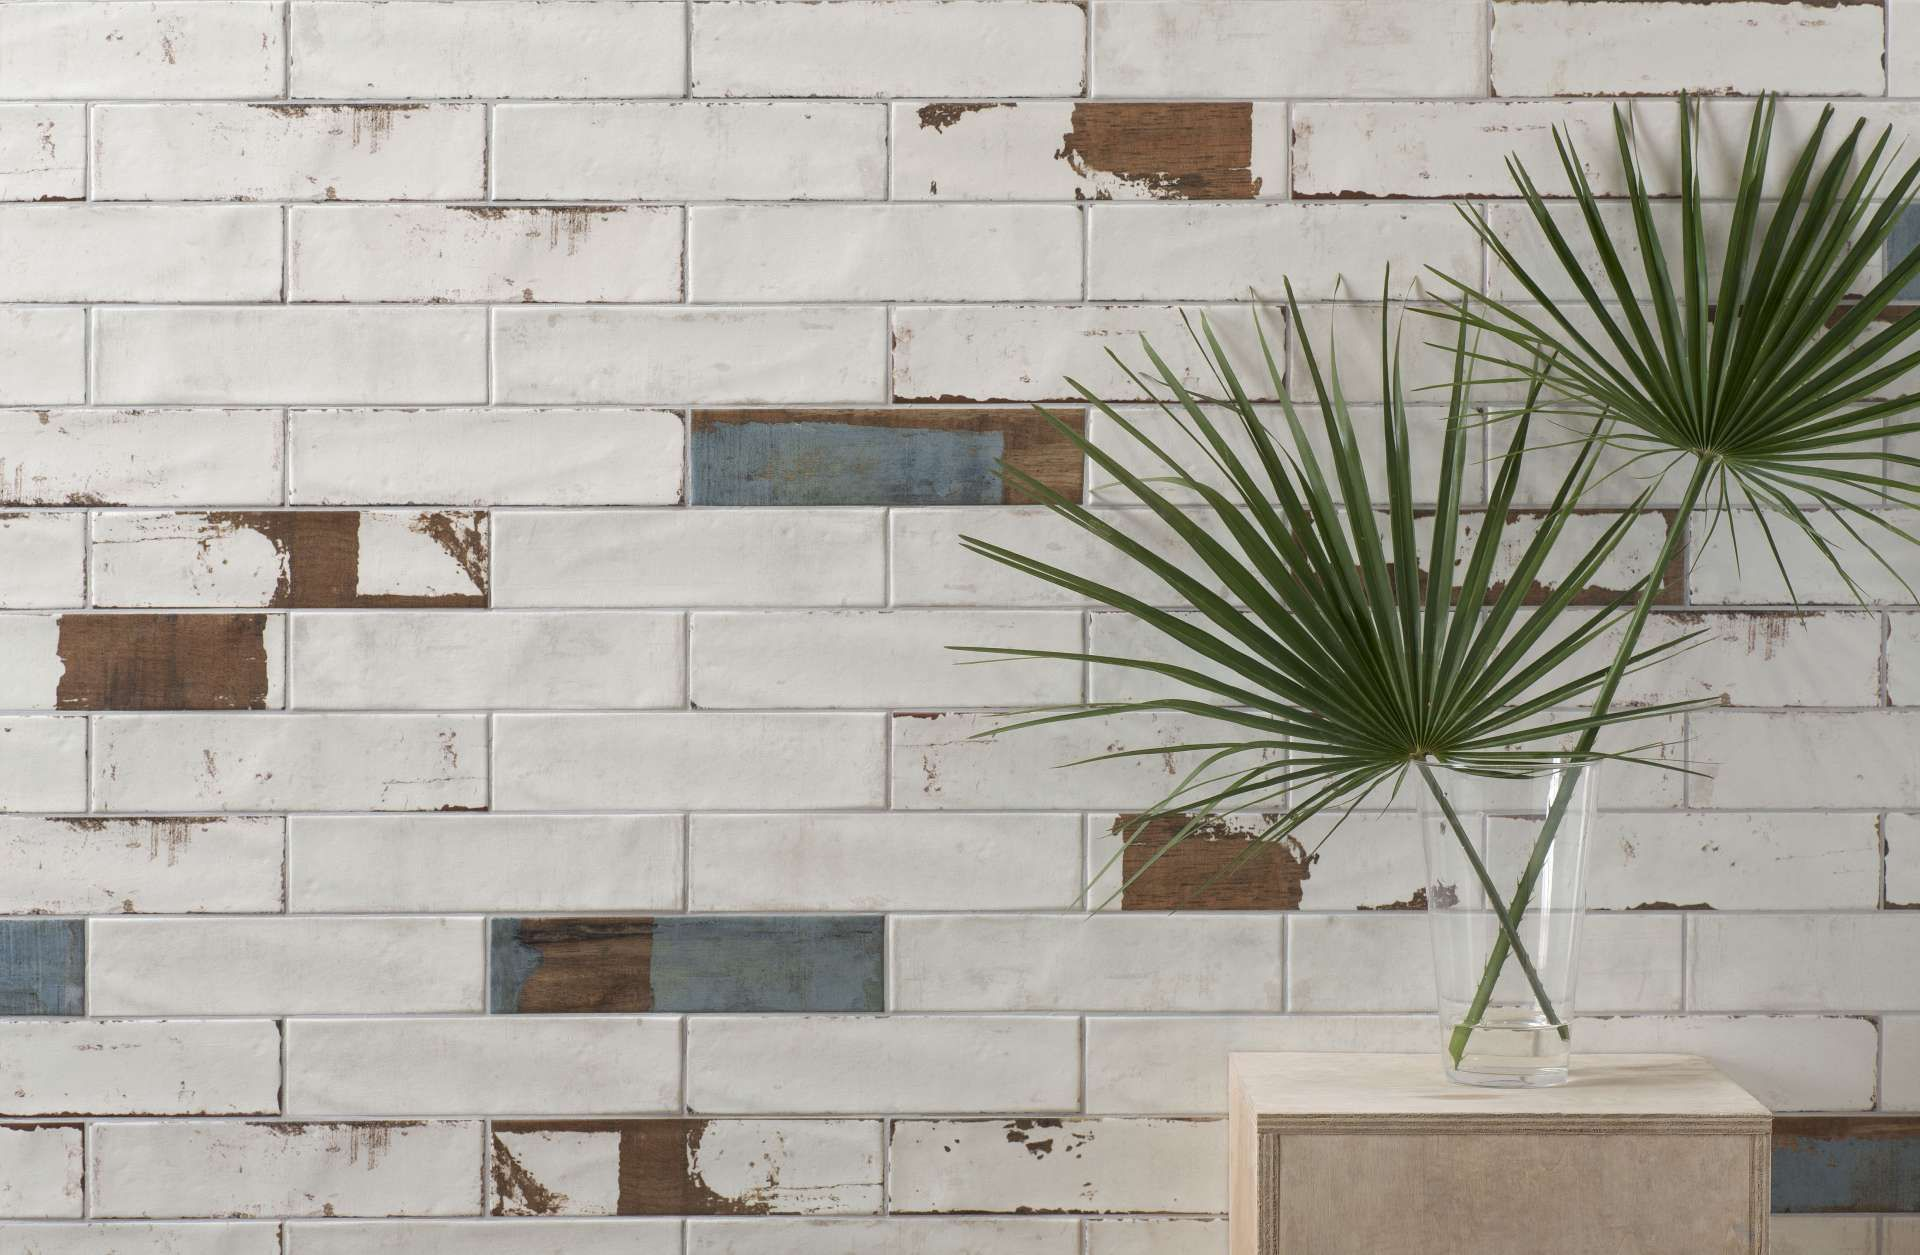 Pin by EXTO on Wood Effect Tiles | Pinterest | Cotswold cottages ...